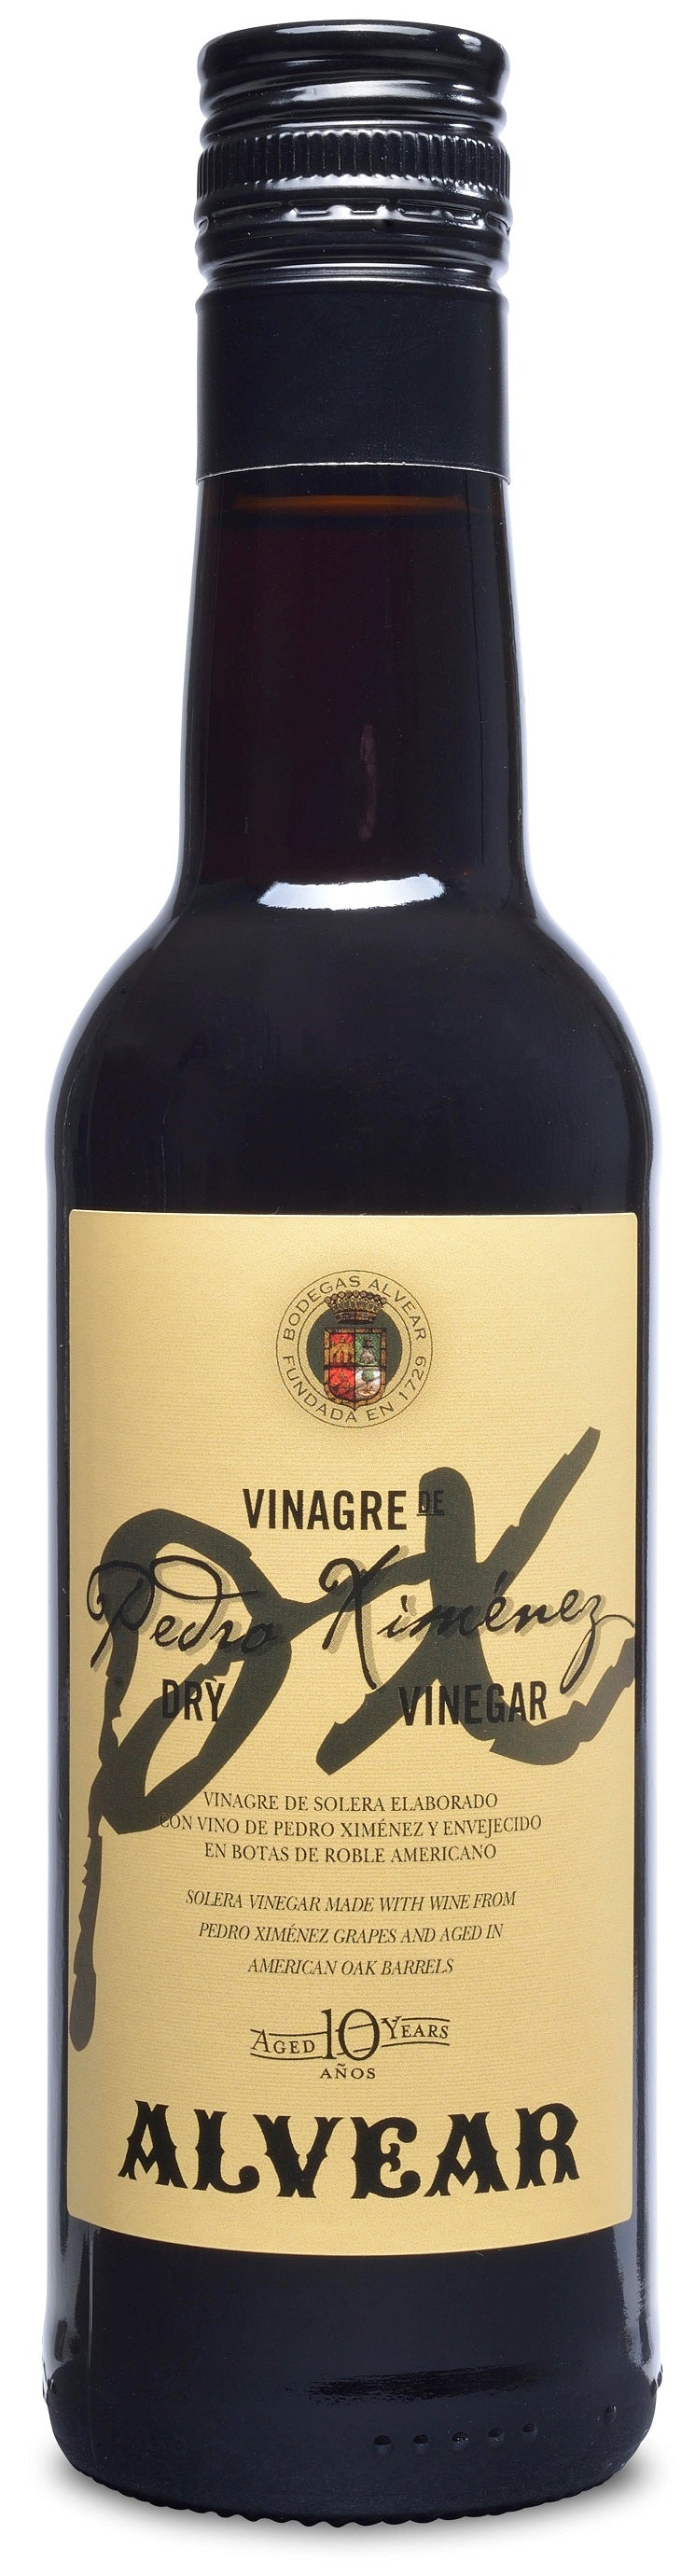 Px Vinegar Dry 10 Yr Spain: 375 Ml